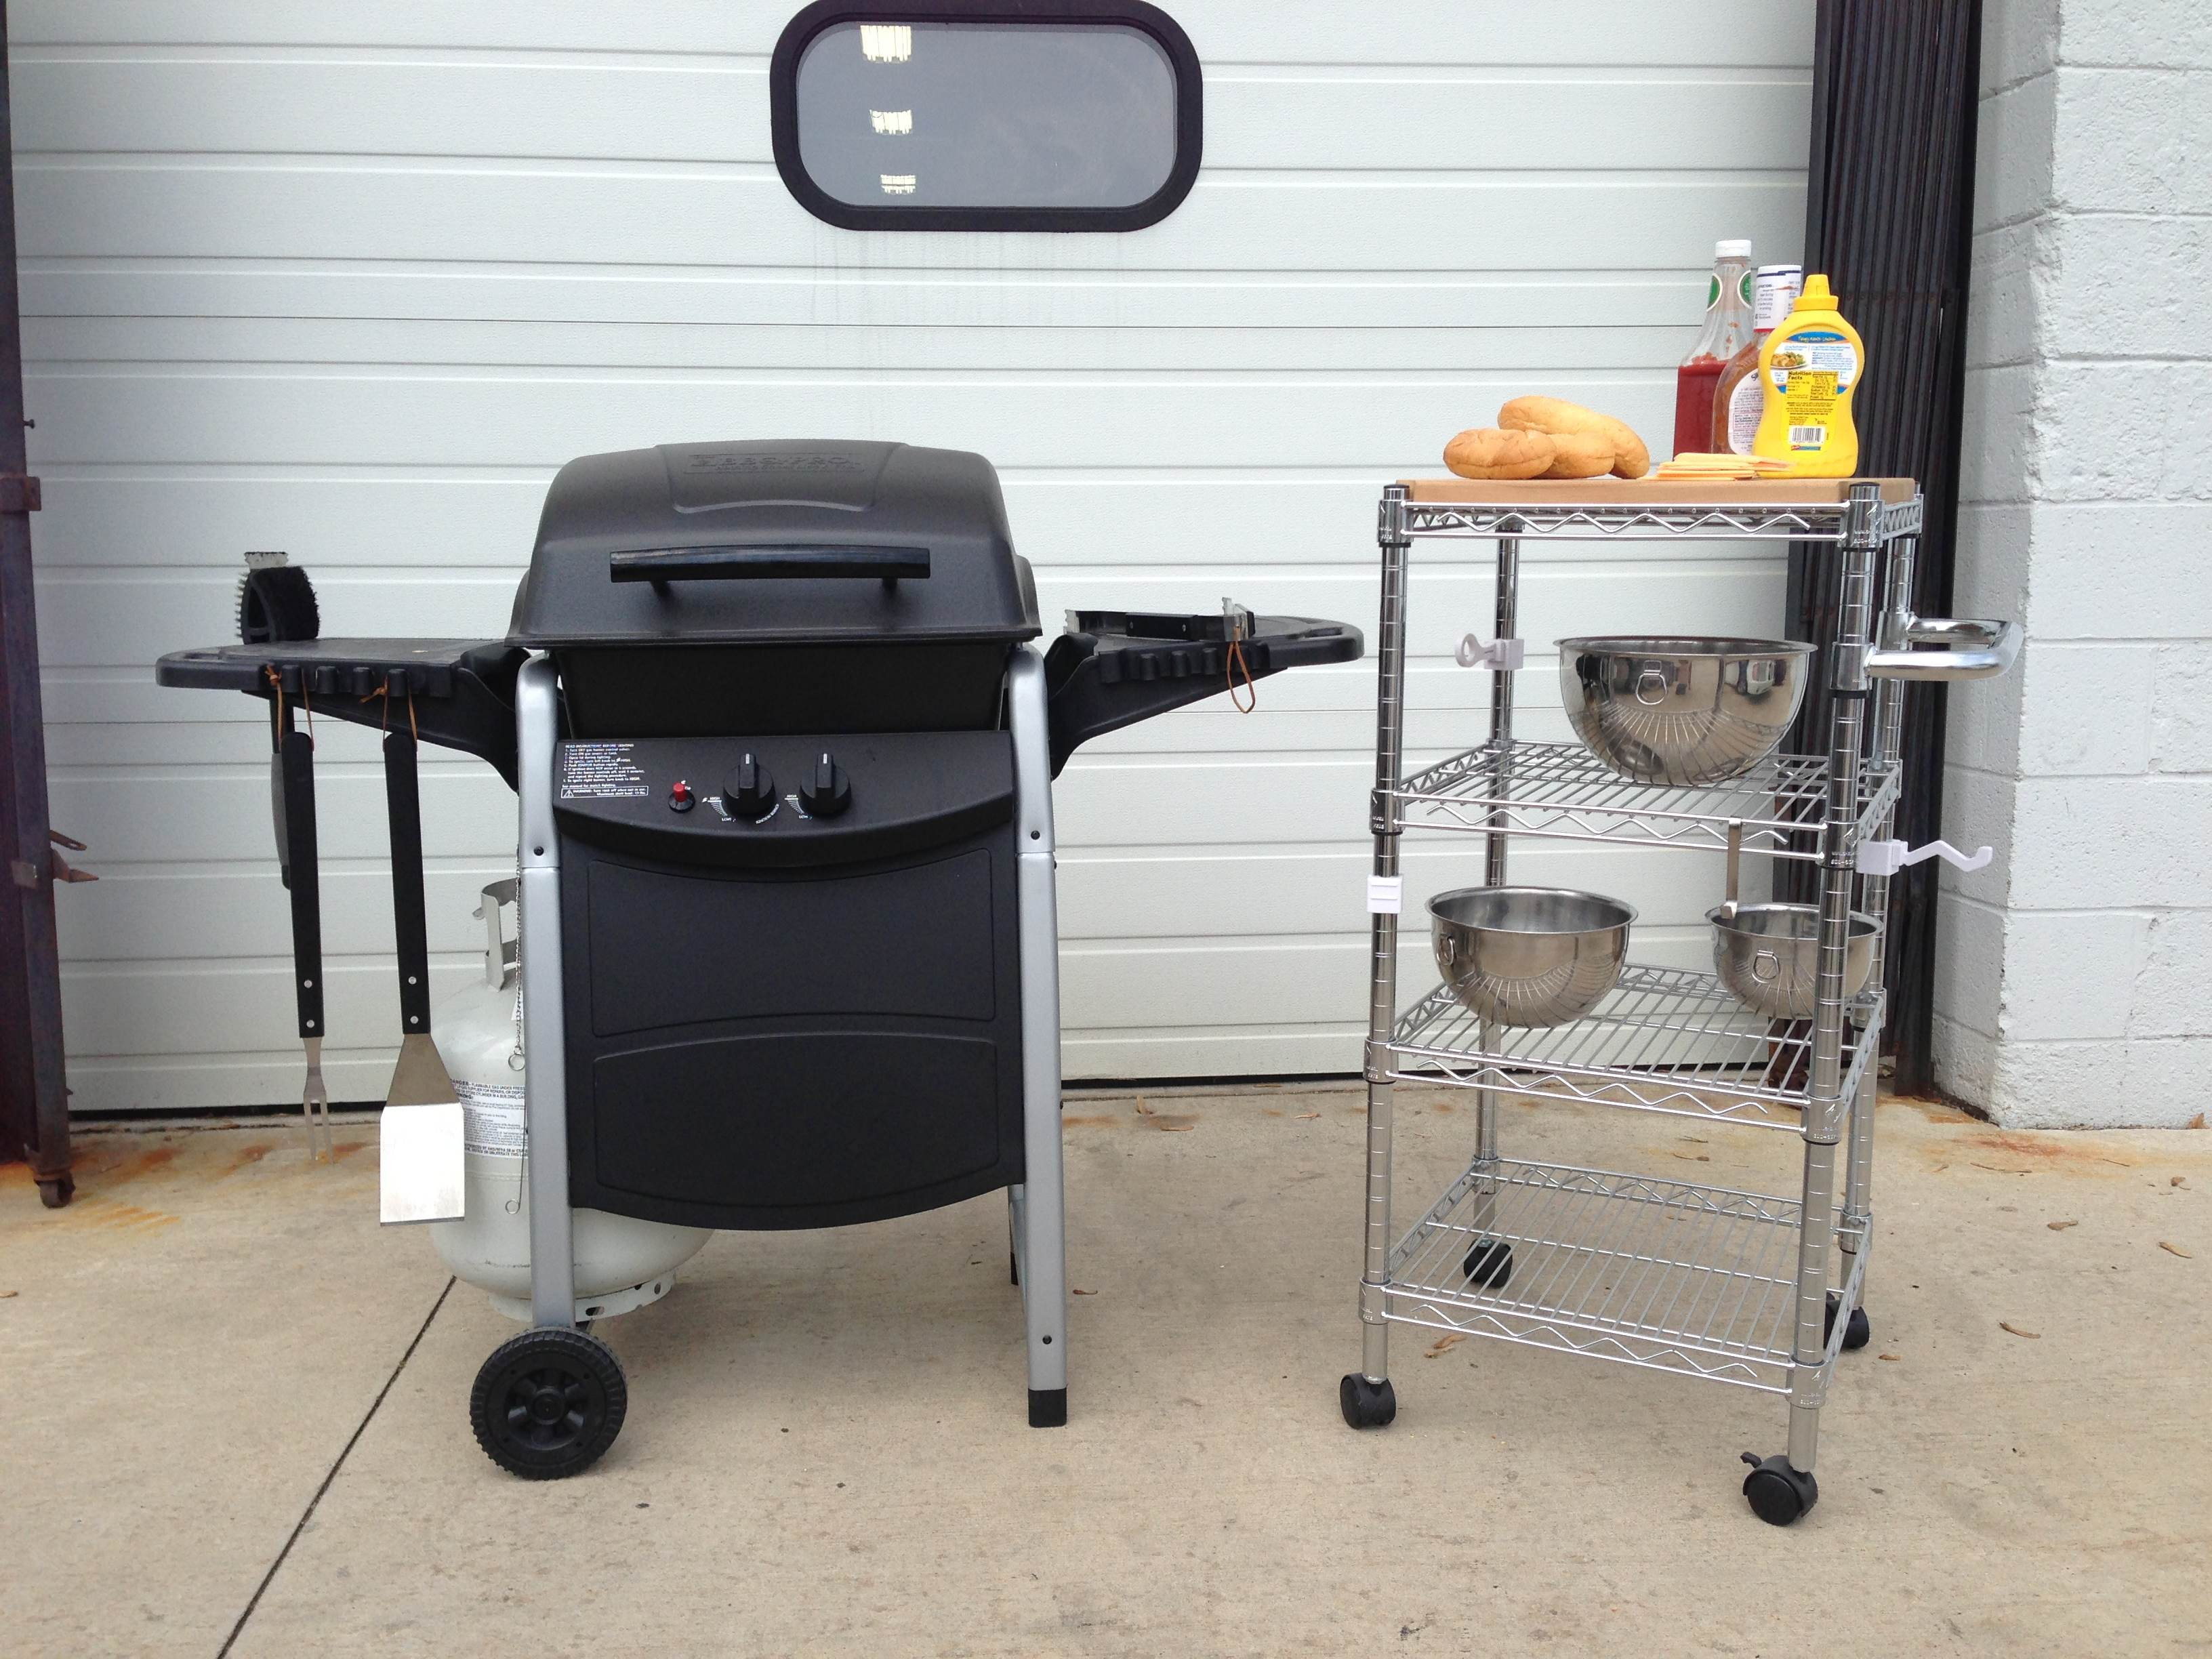 Grill Anywhere... With Casters! - The Shelving Blog